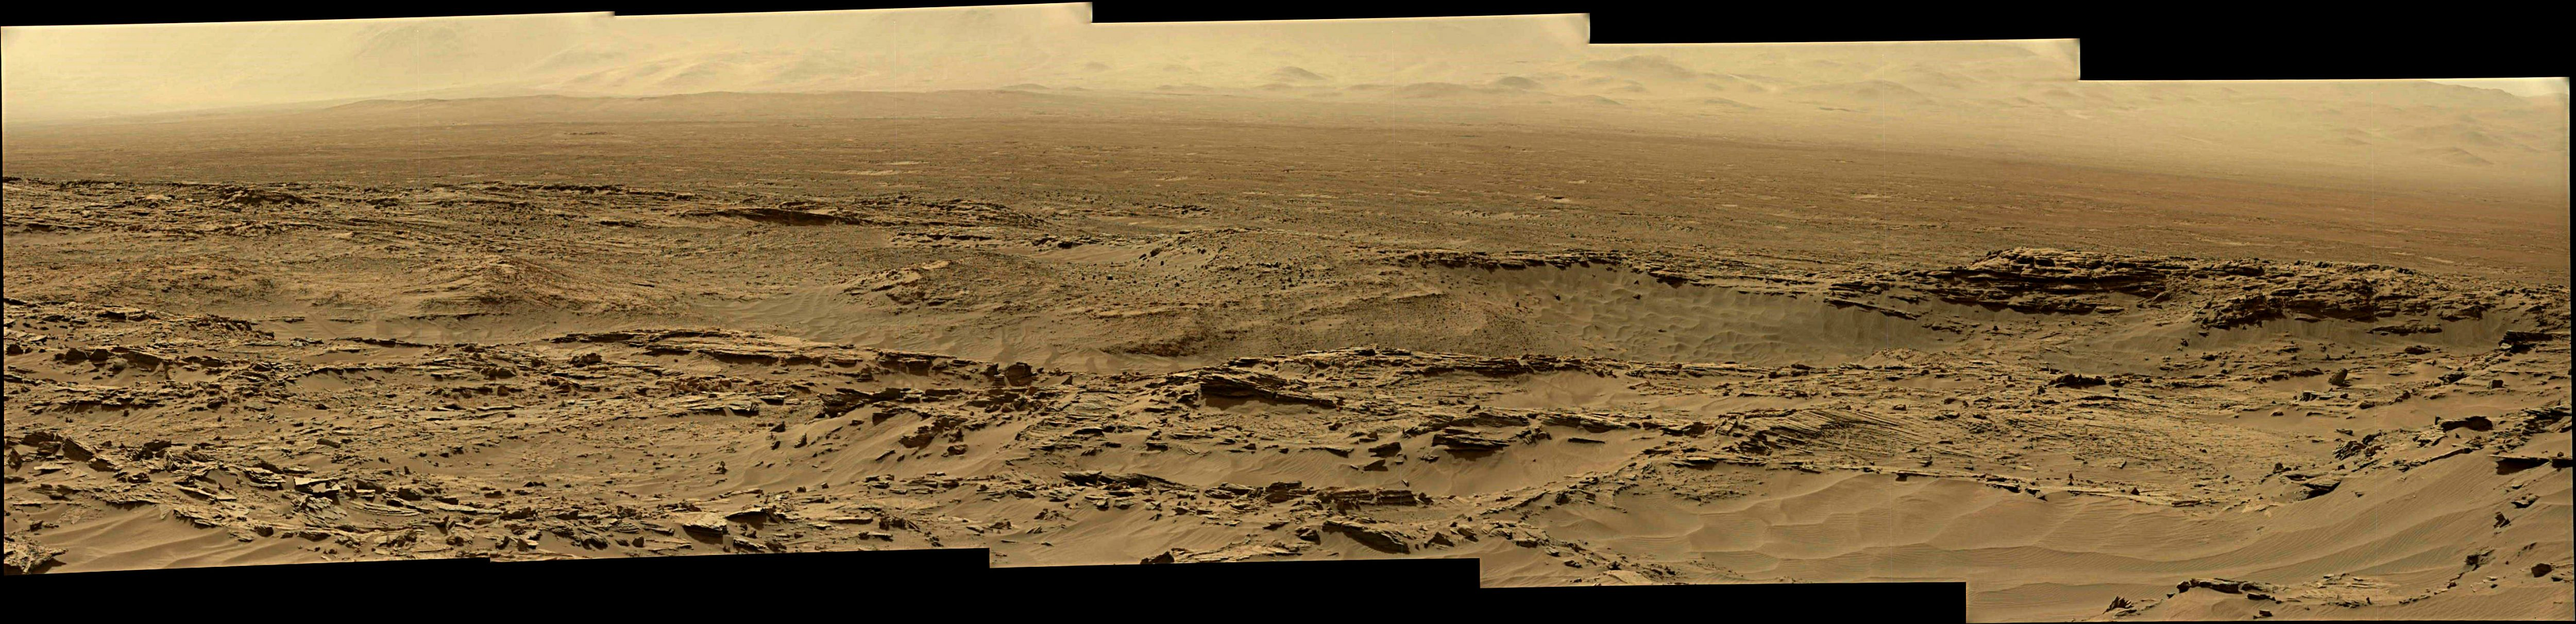 panoramic curiosity rover view 1 enhanced - sol 1344 - was life on mars